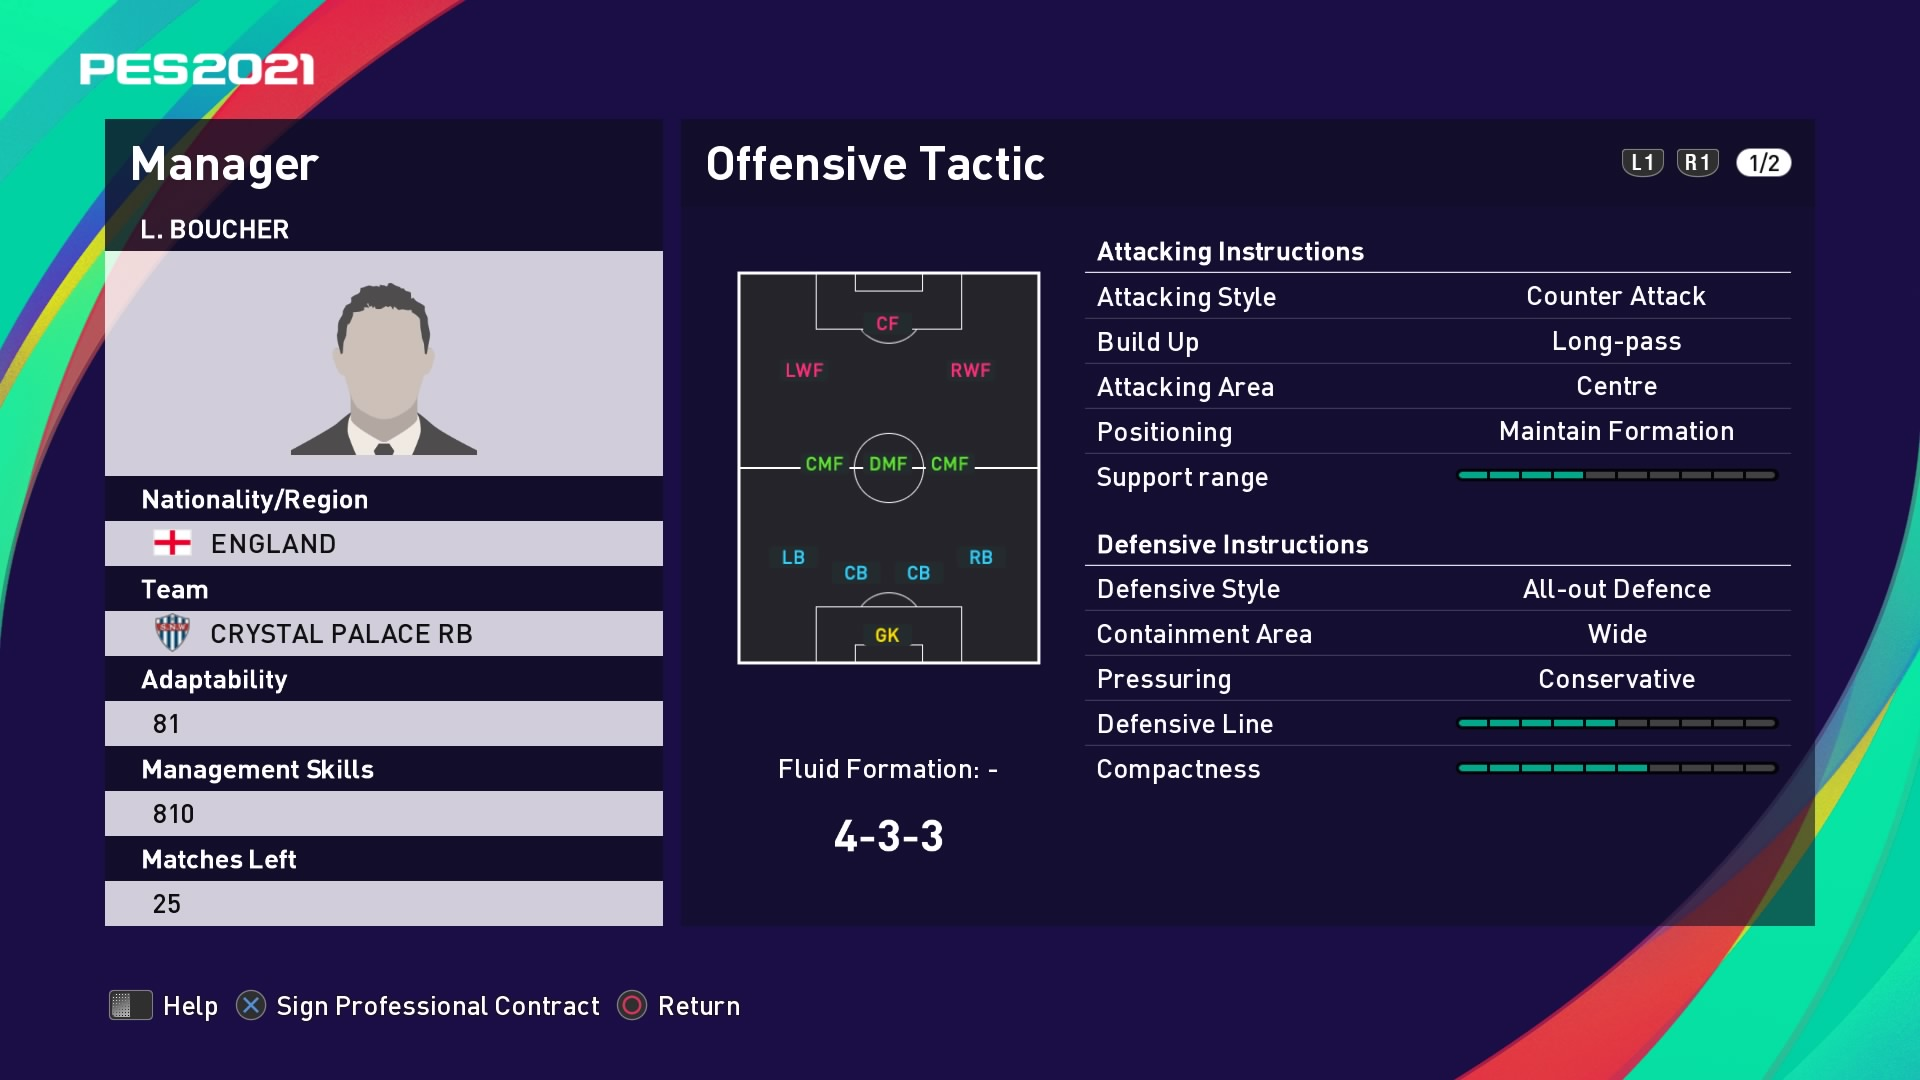 L. Boucher (Roy Hodgson) Offensive Tactic in PES 2021 myClub